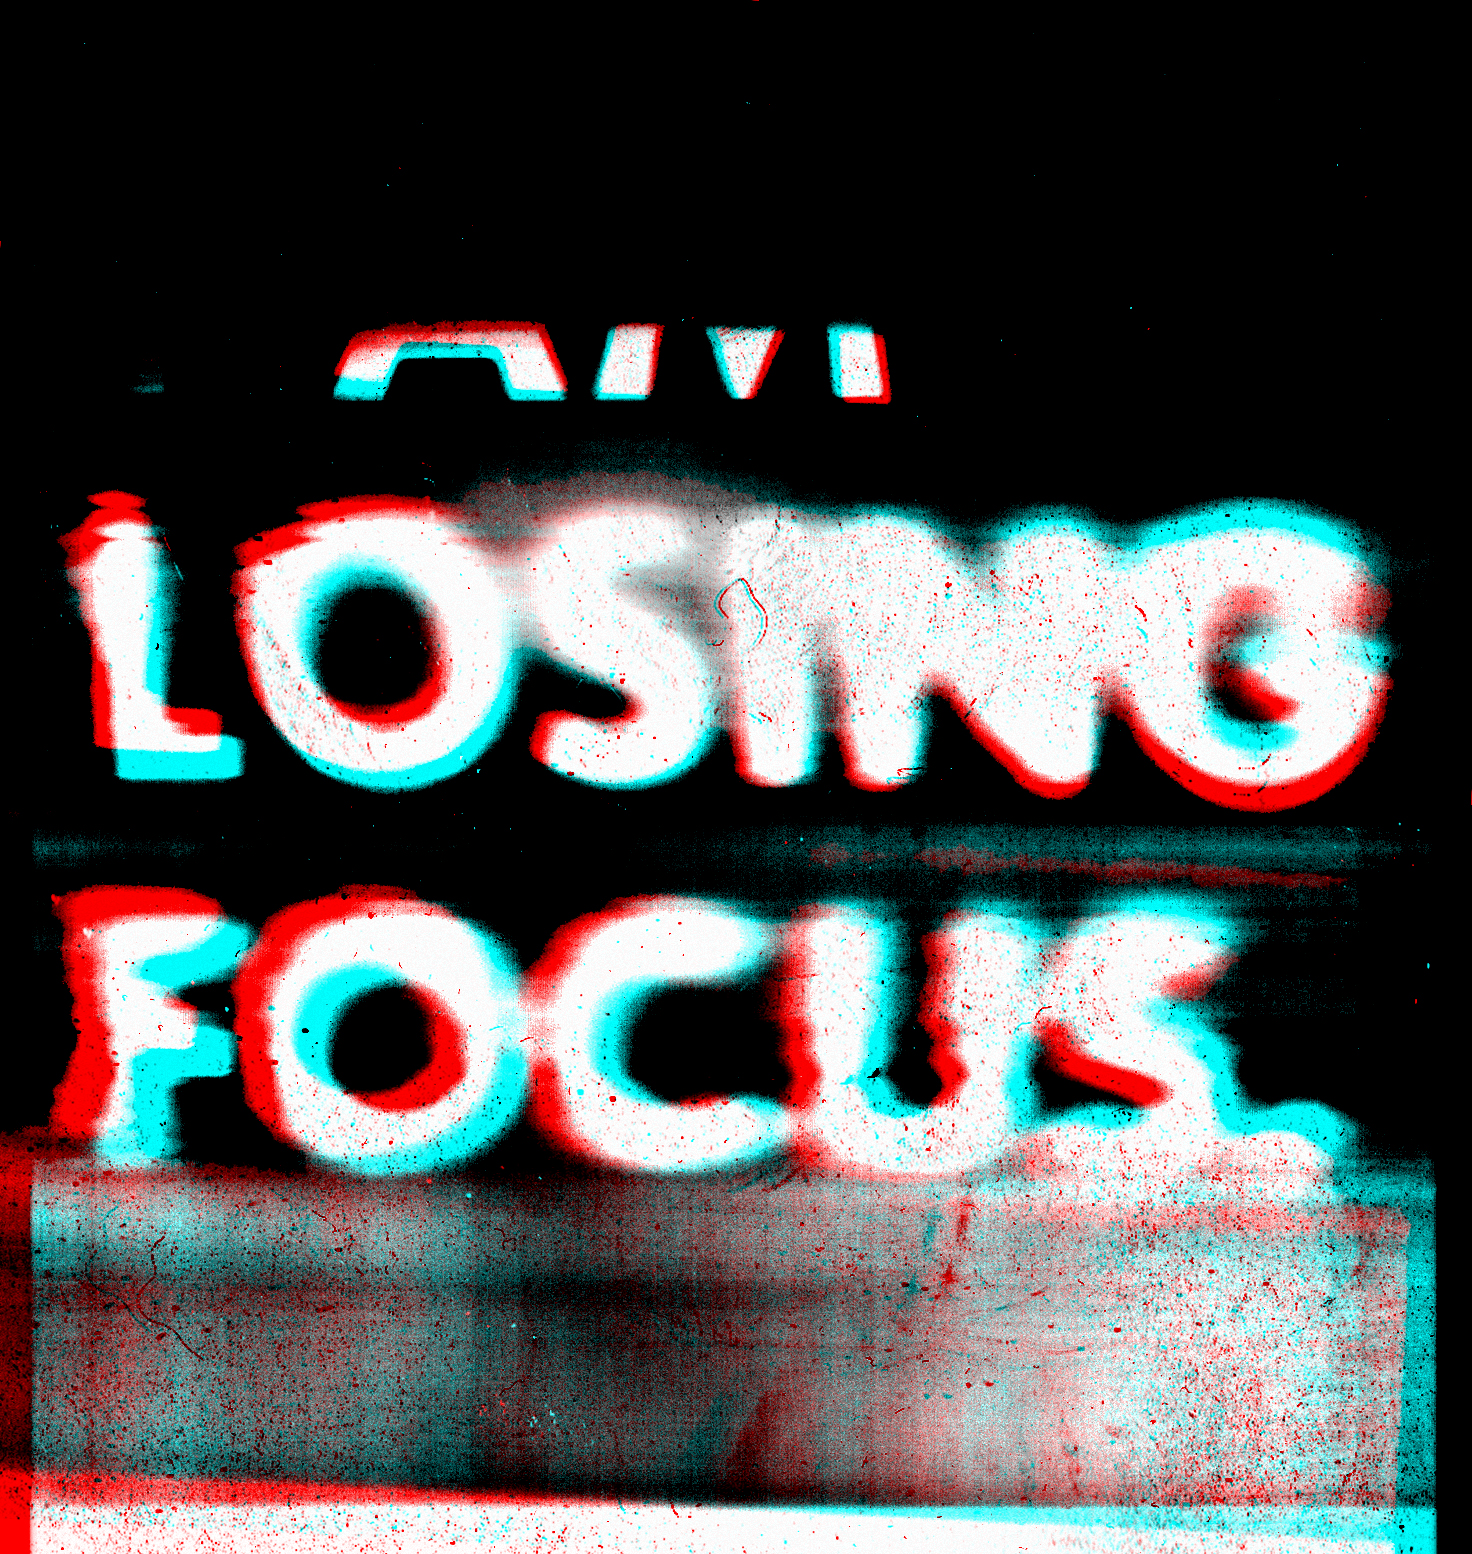 All sizes | am losing focus | Flickr - Photo Sharing!